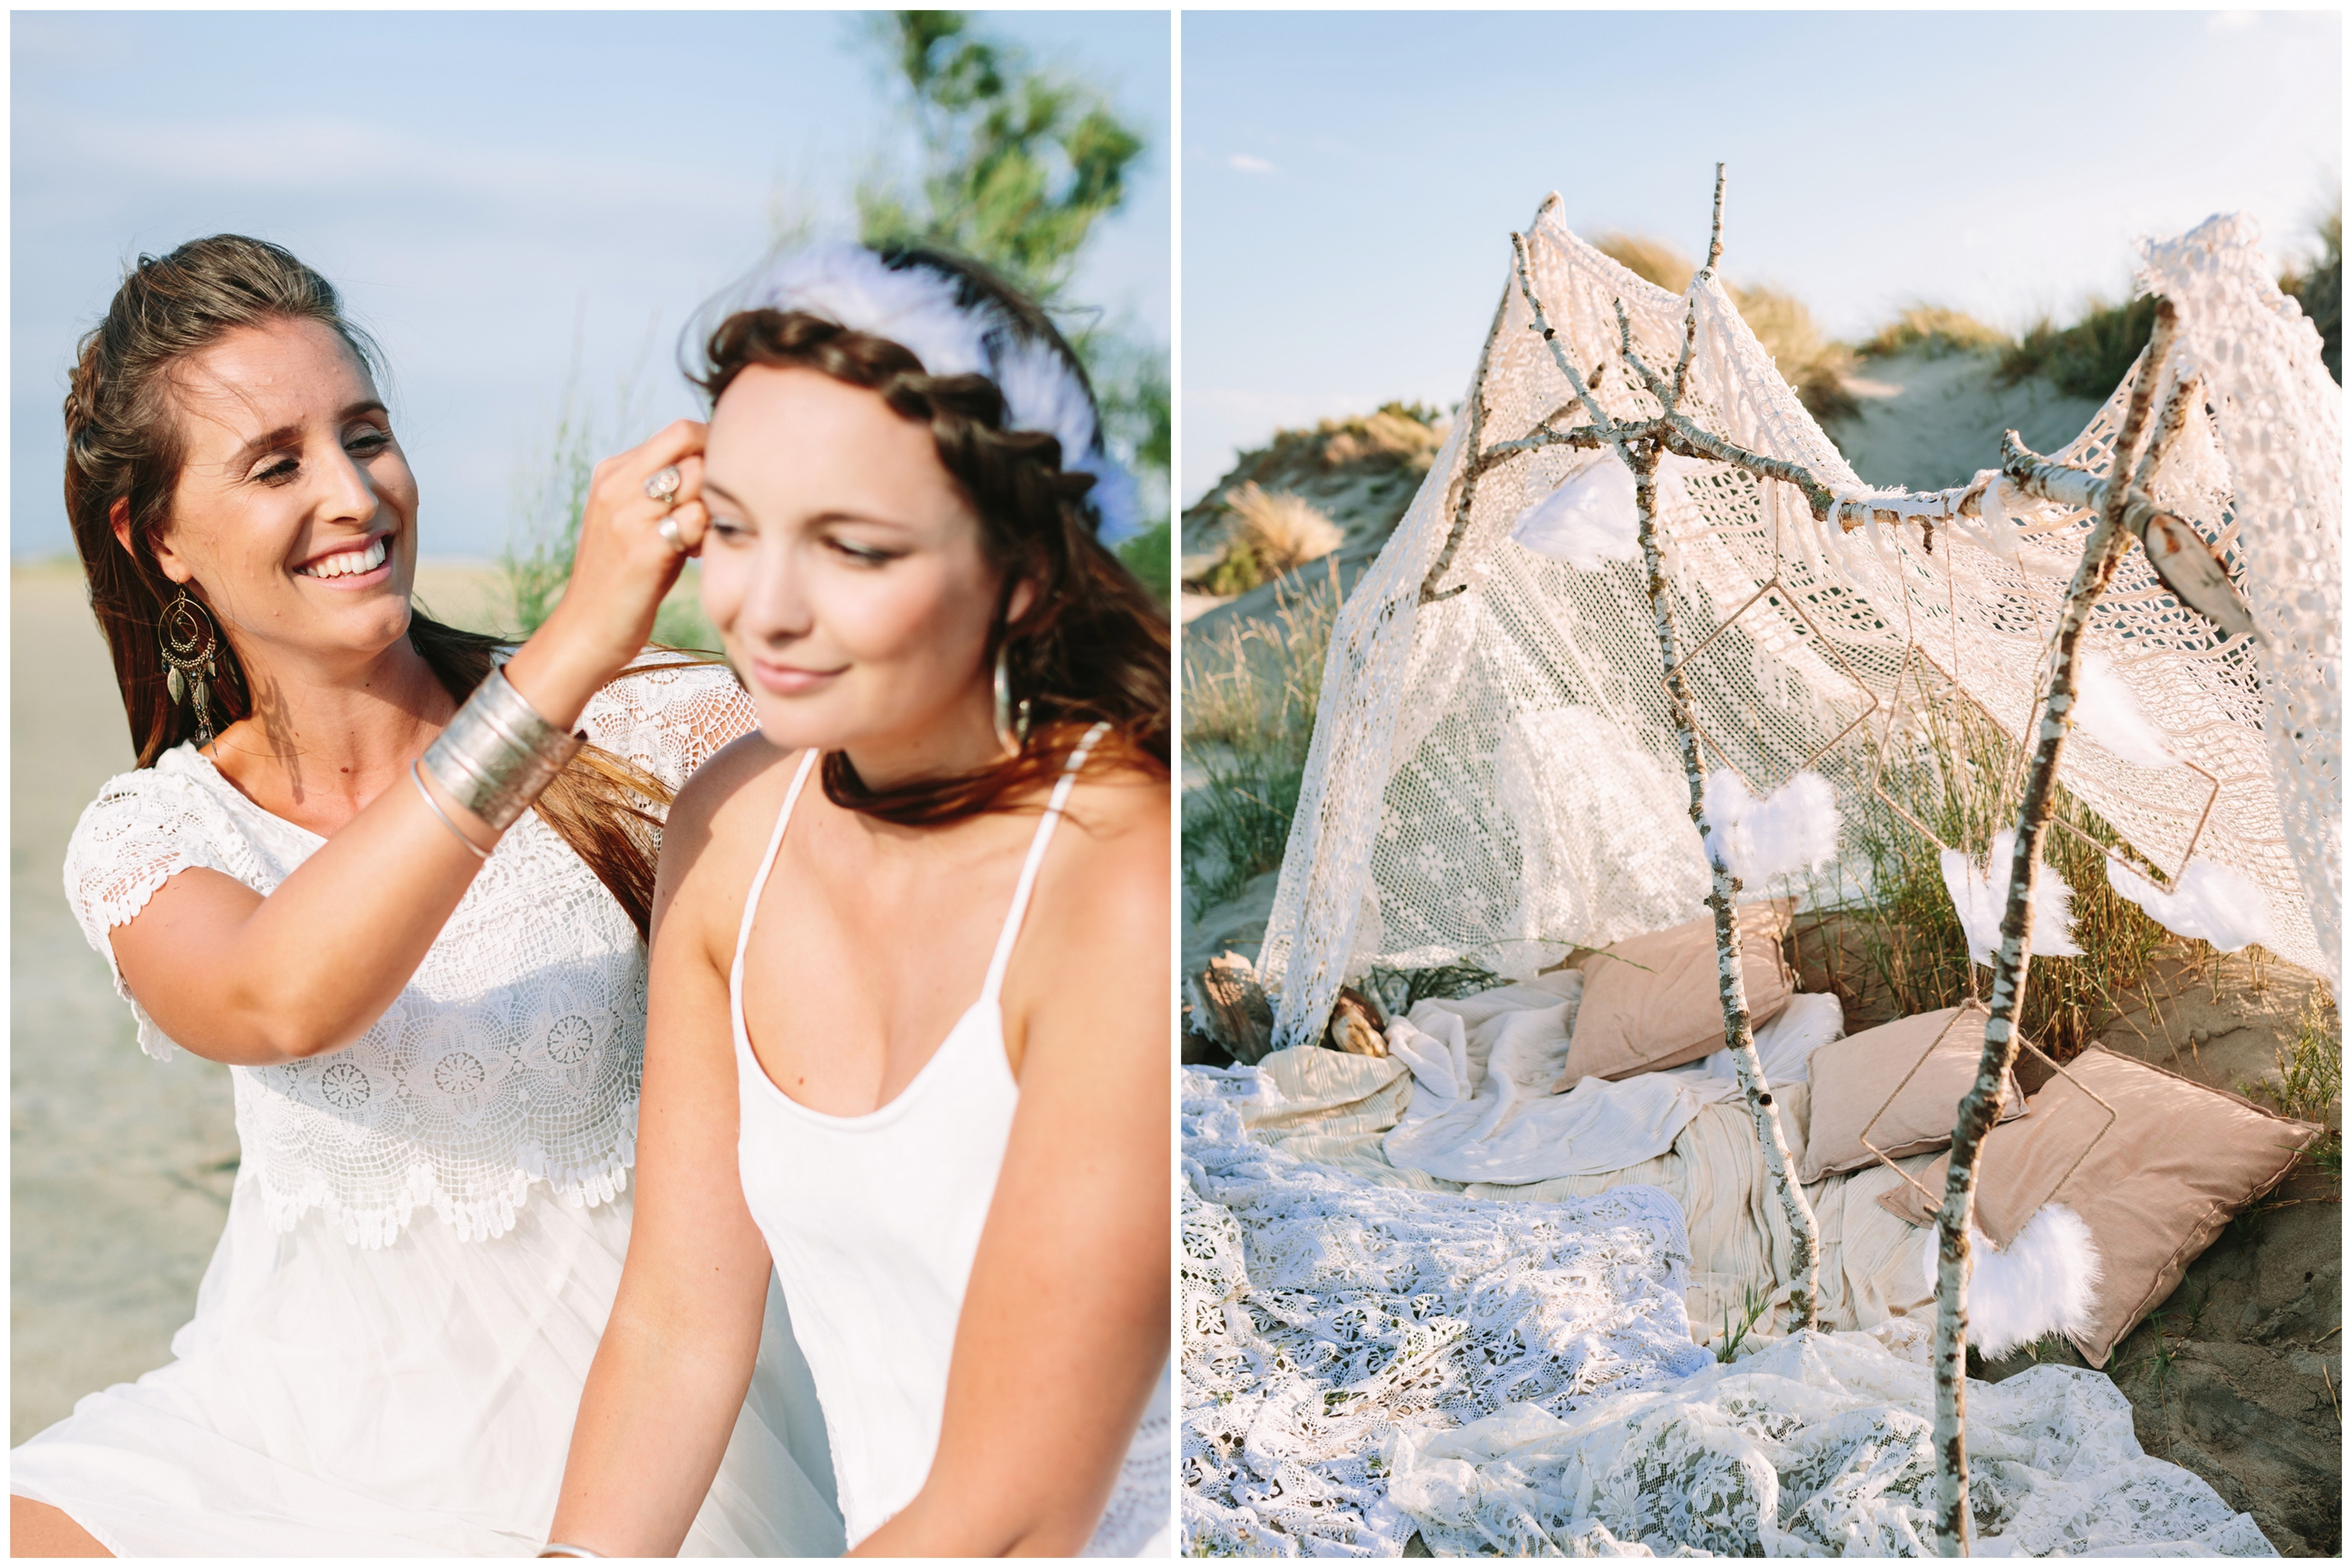 Boho Inspired Bachelorette Party Photography by Studio A + Q